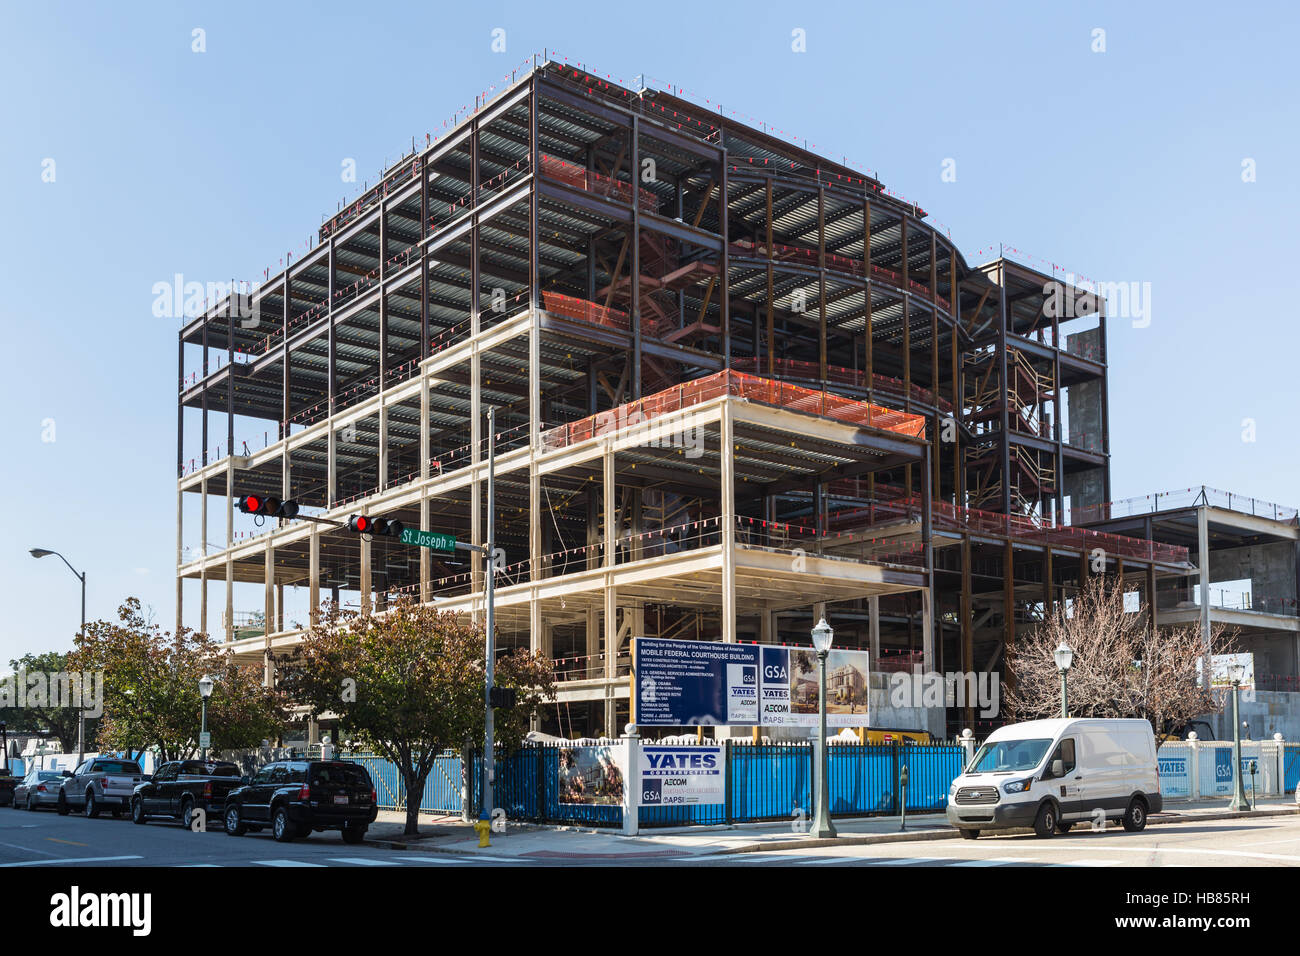 The new Mobile Federal Courthouse Building under construction in Mobile, Alabama. - Stock Image